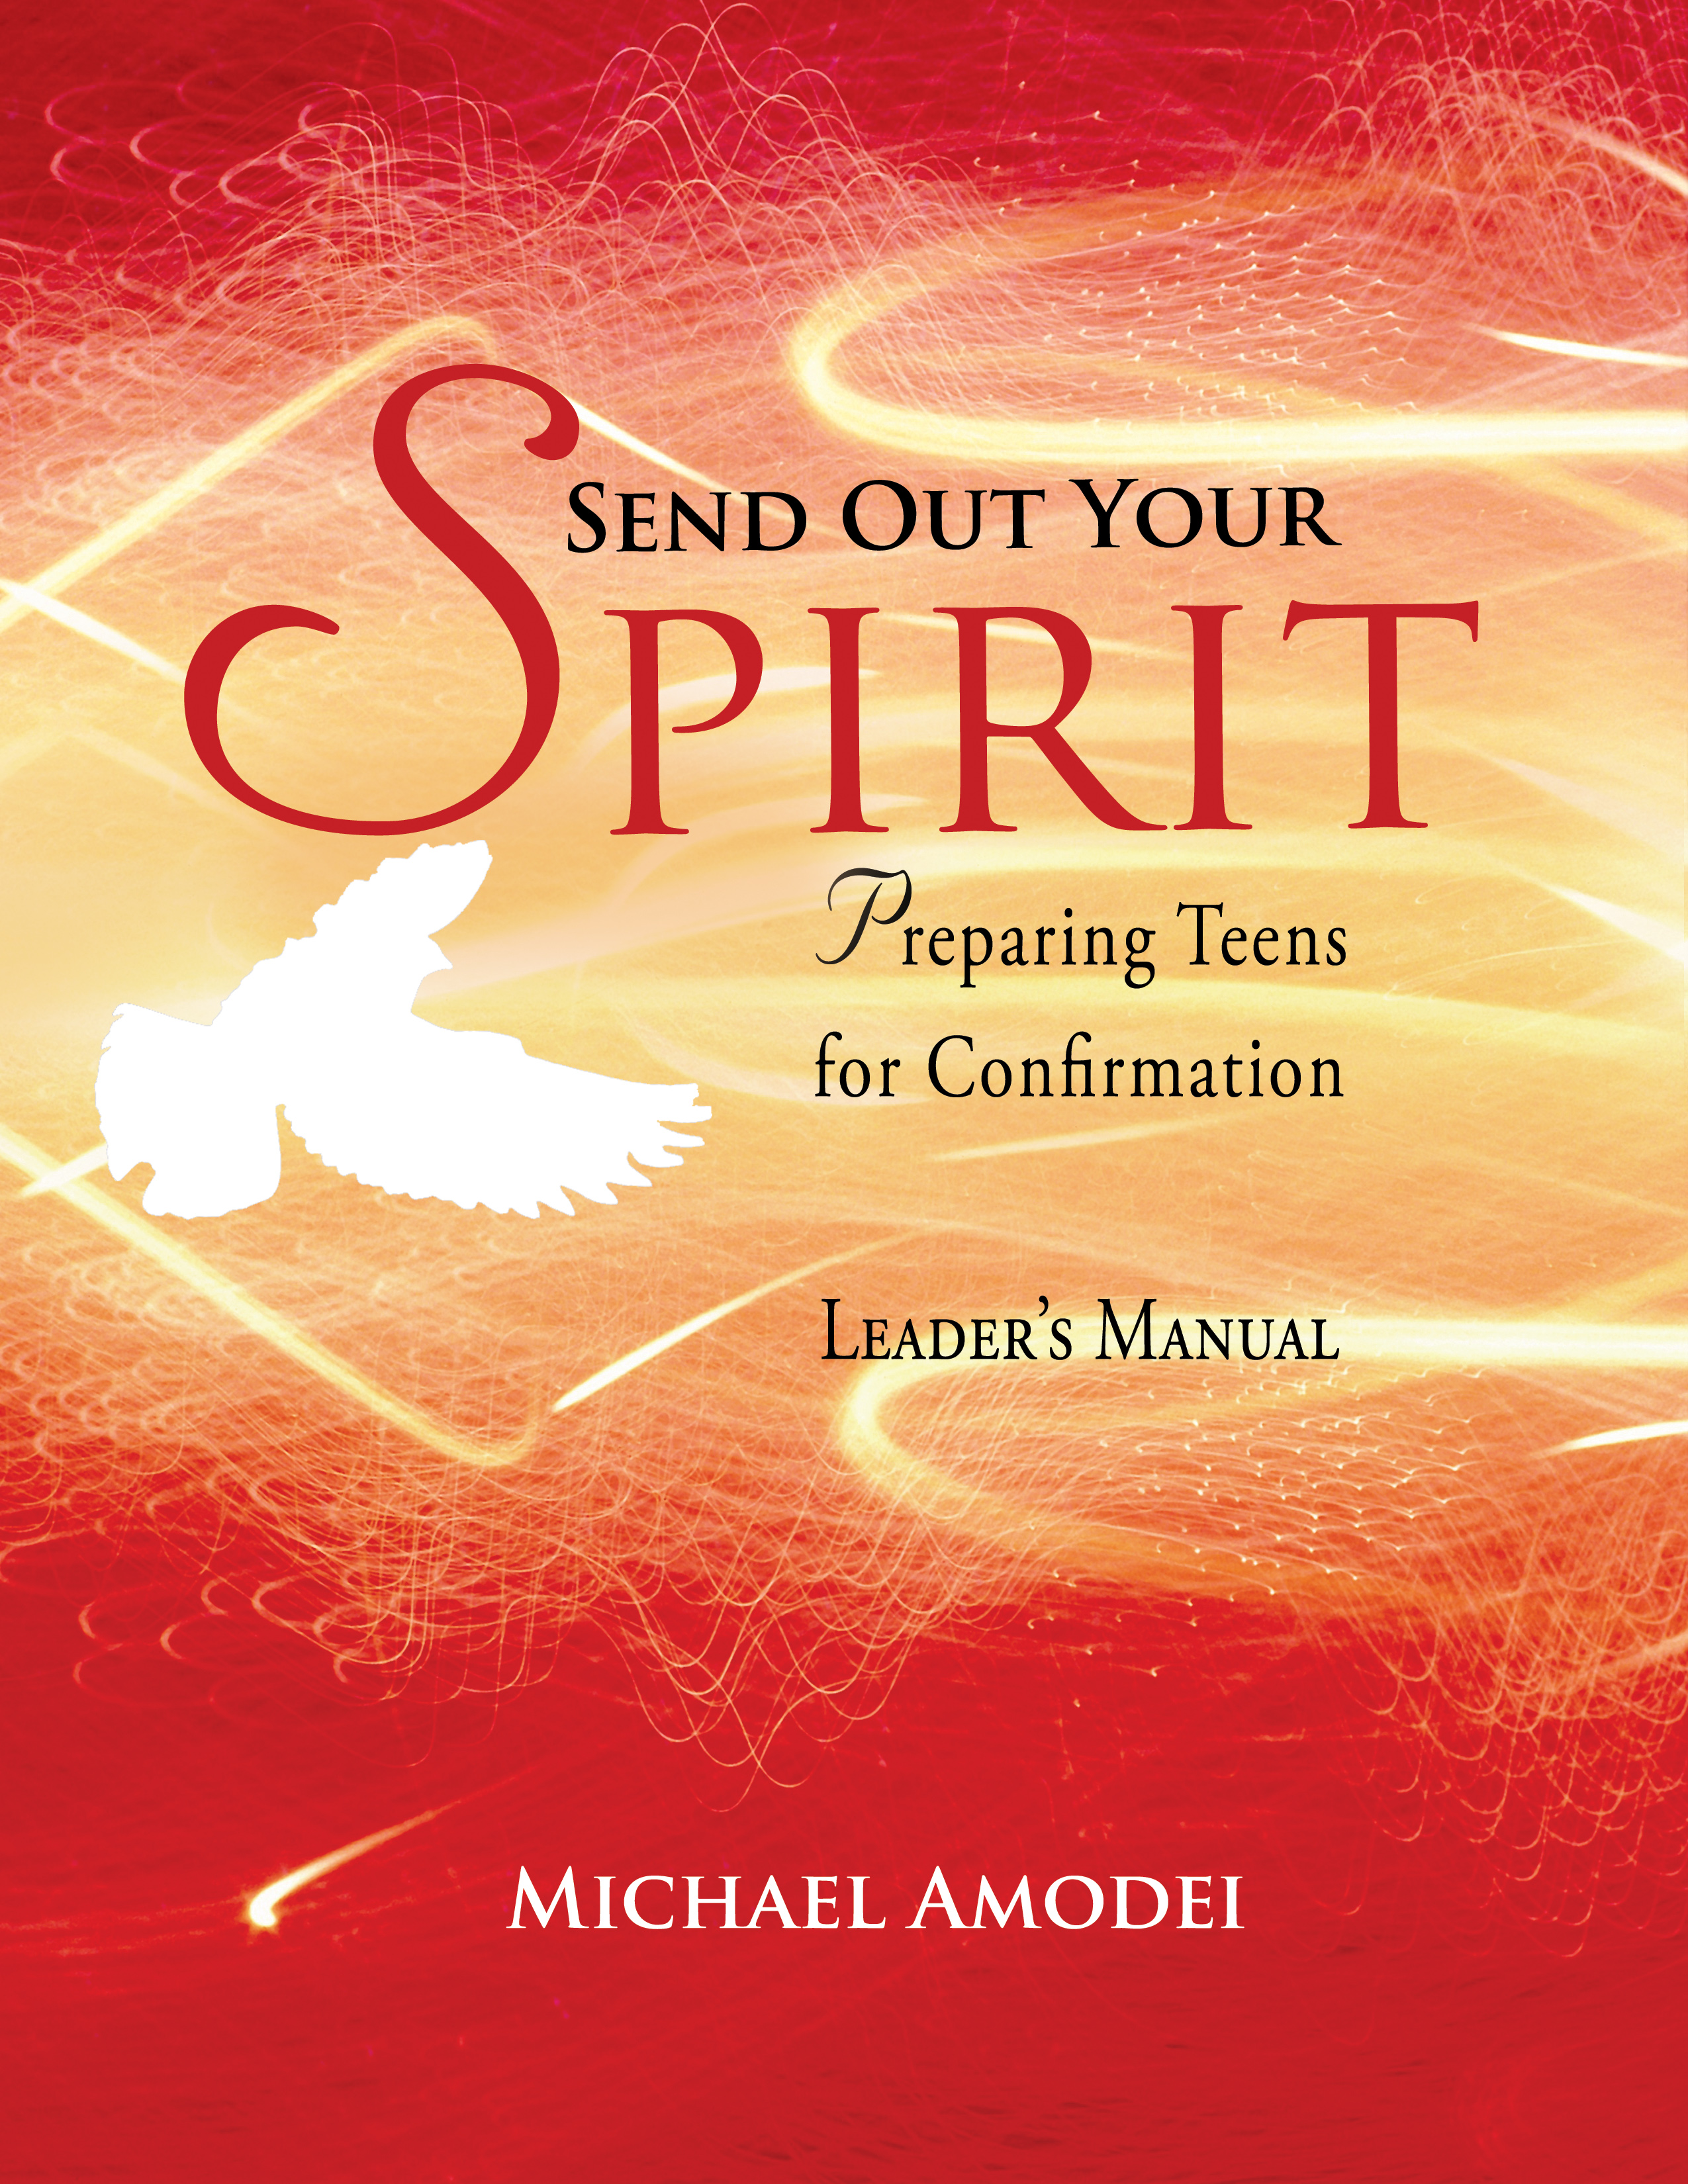 Send Out Your Spirit (Leader's Manual)